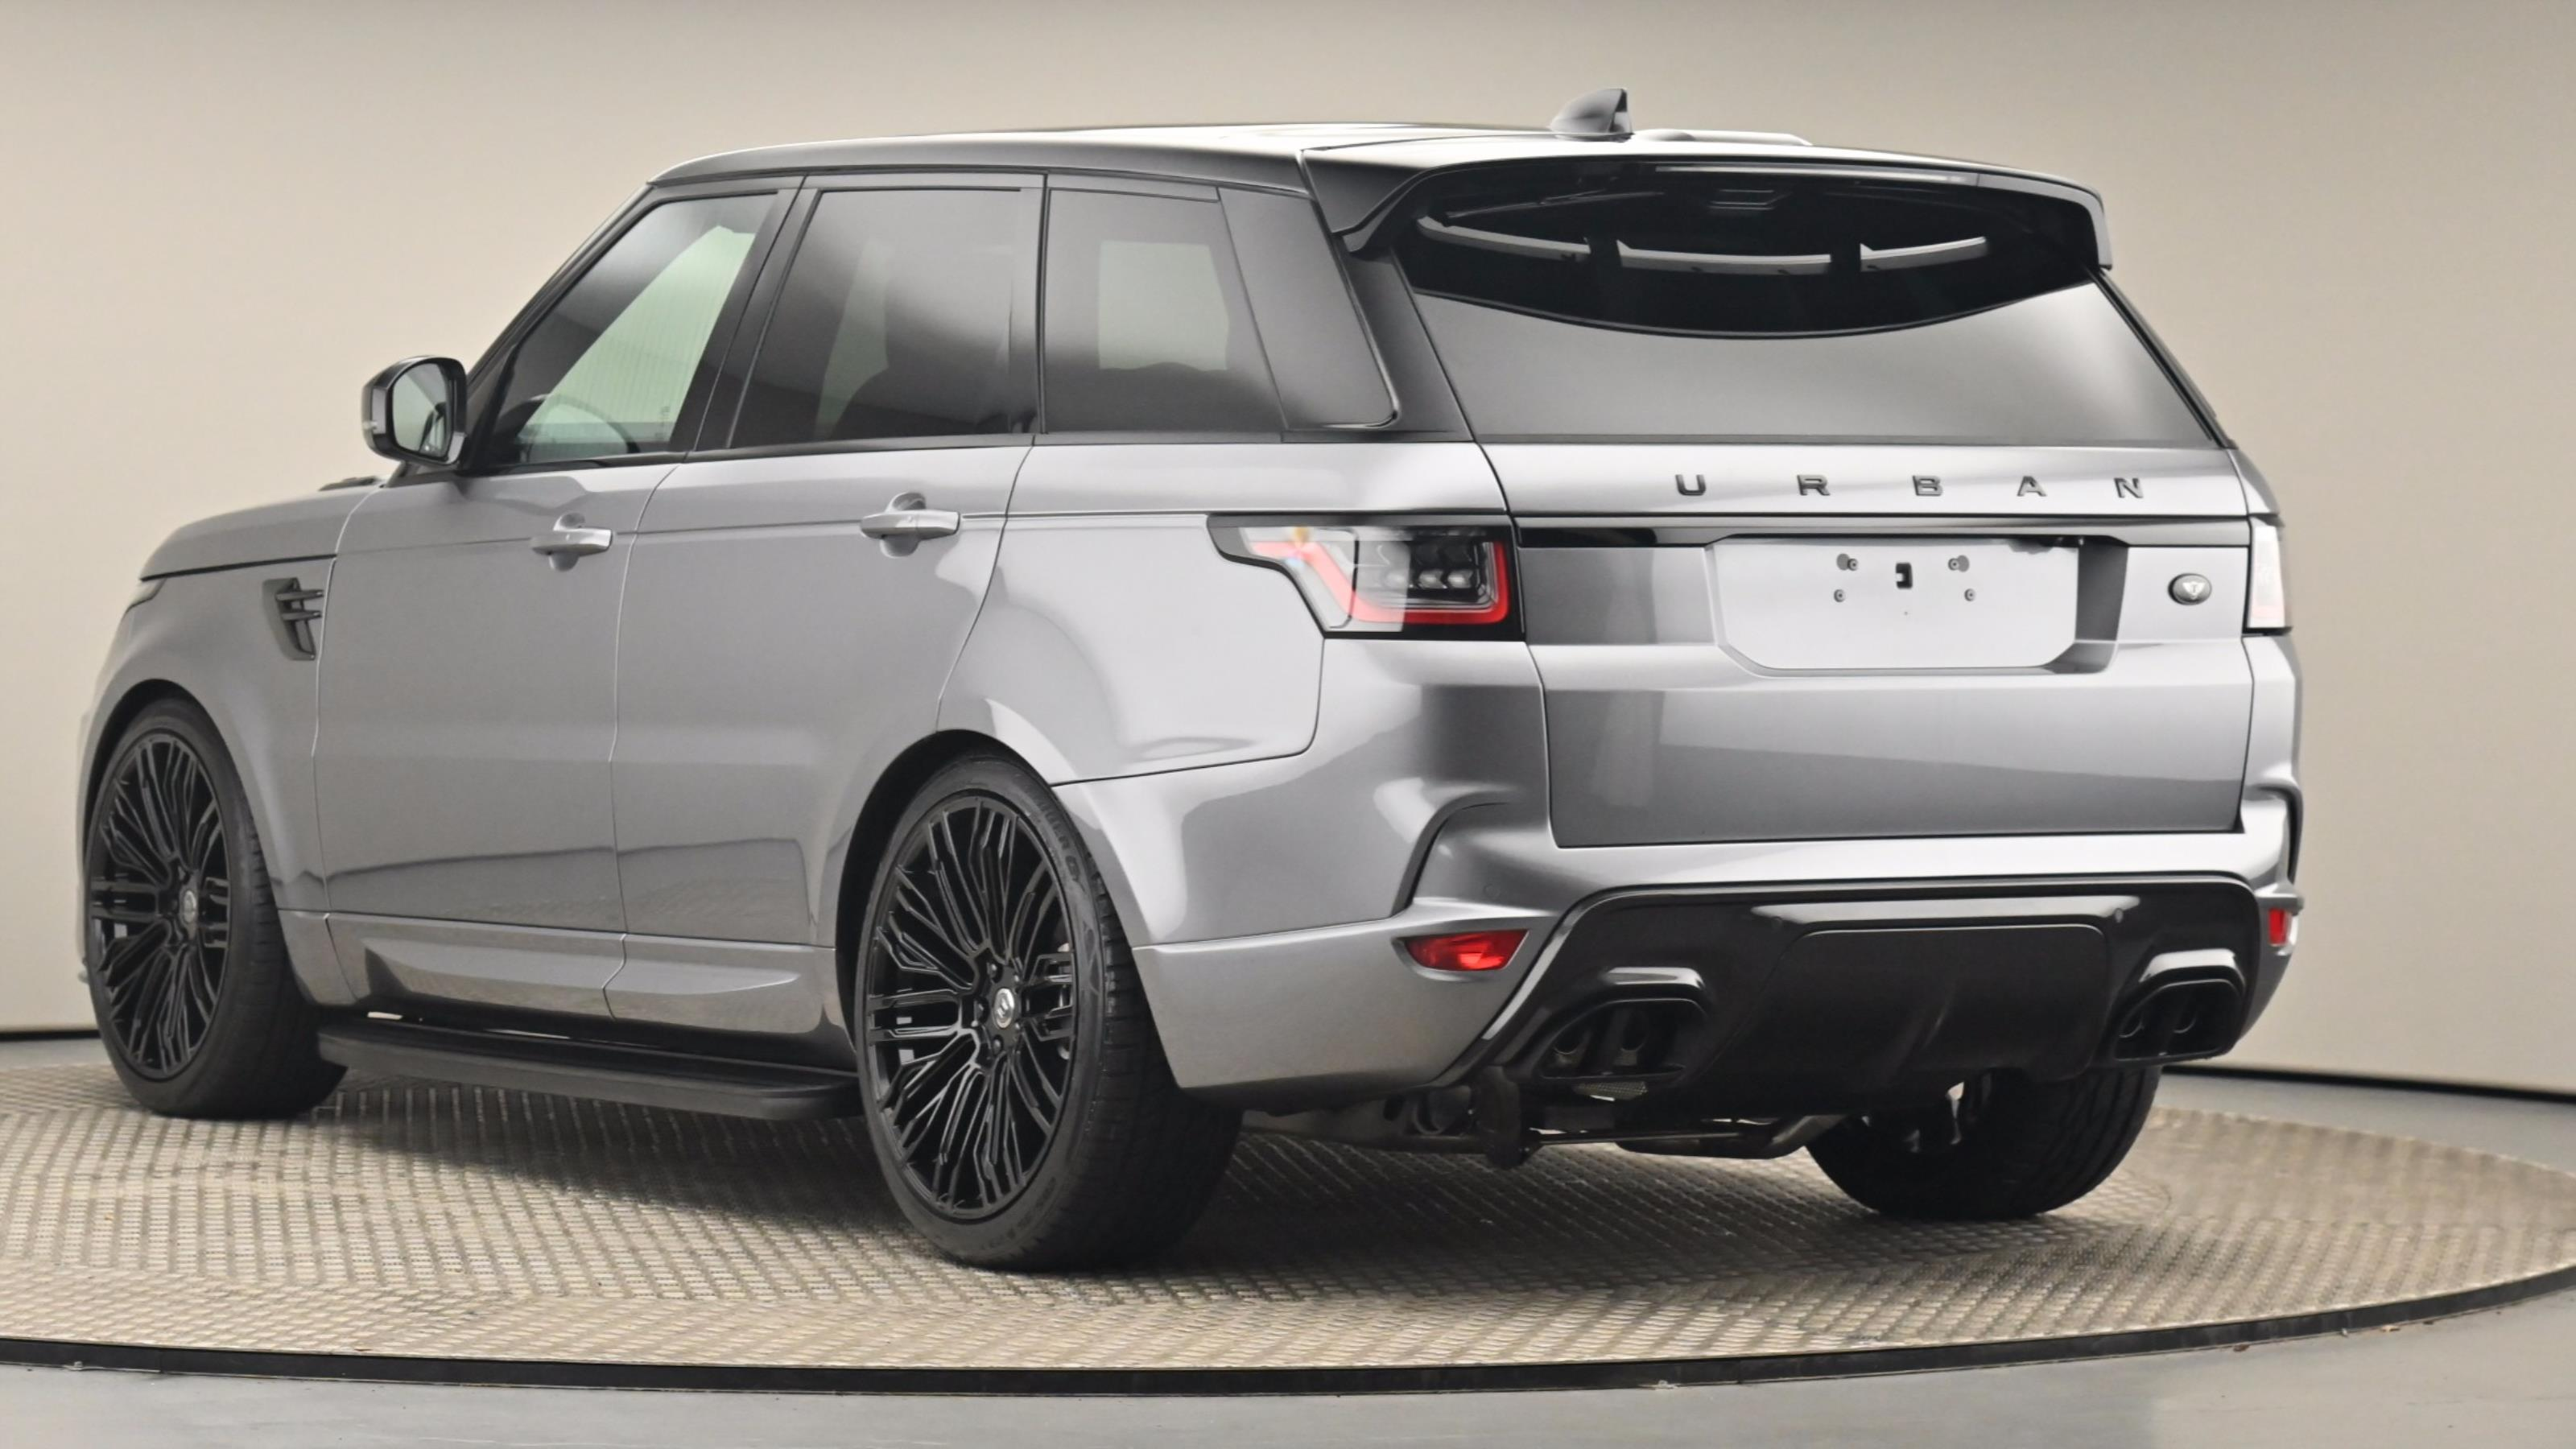 Used 2019 Land Rover RANGE ROVER SPORT 3.0 SDV6 HSE 5dr Auto GREY at Saxton4x4